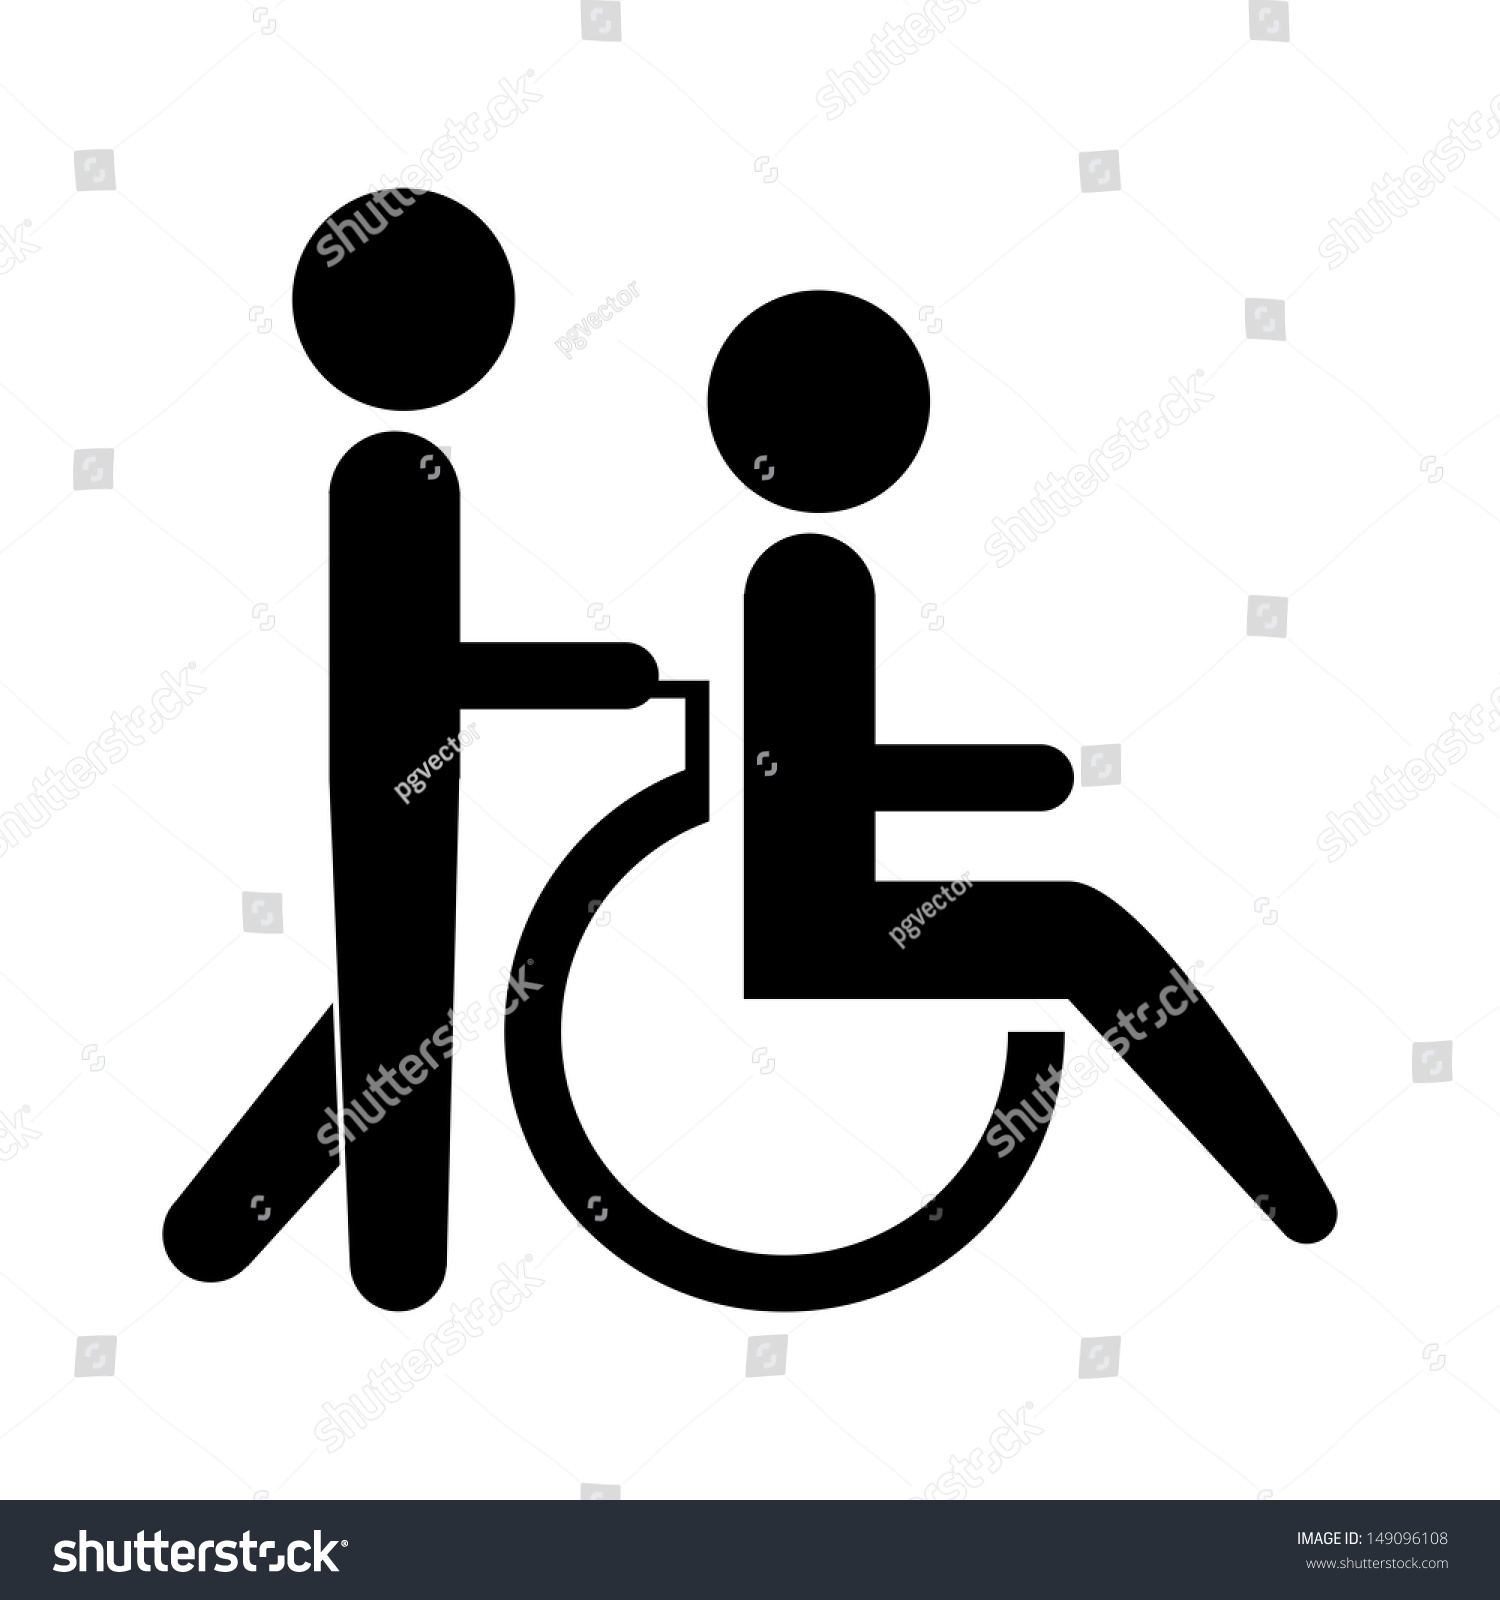 Silhouette Of A Person Helping Another Push A Wheelchair